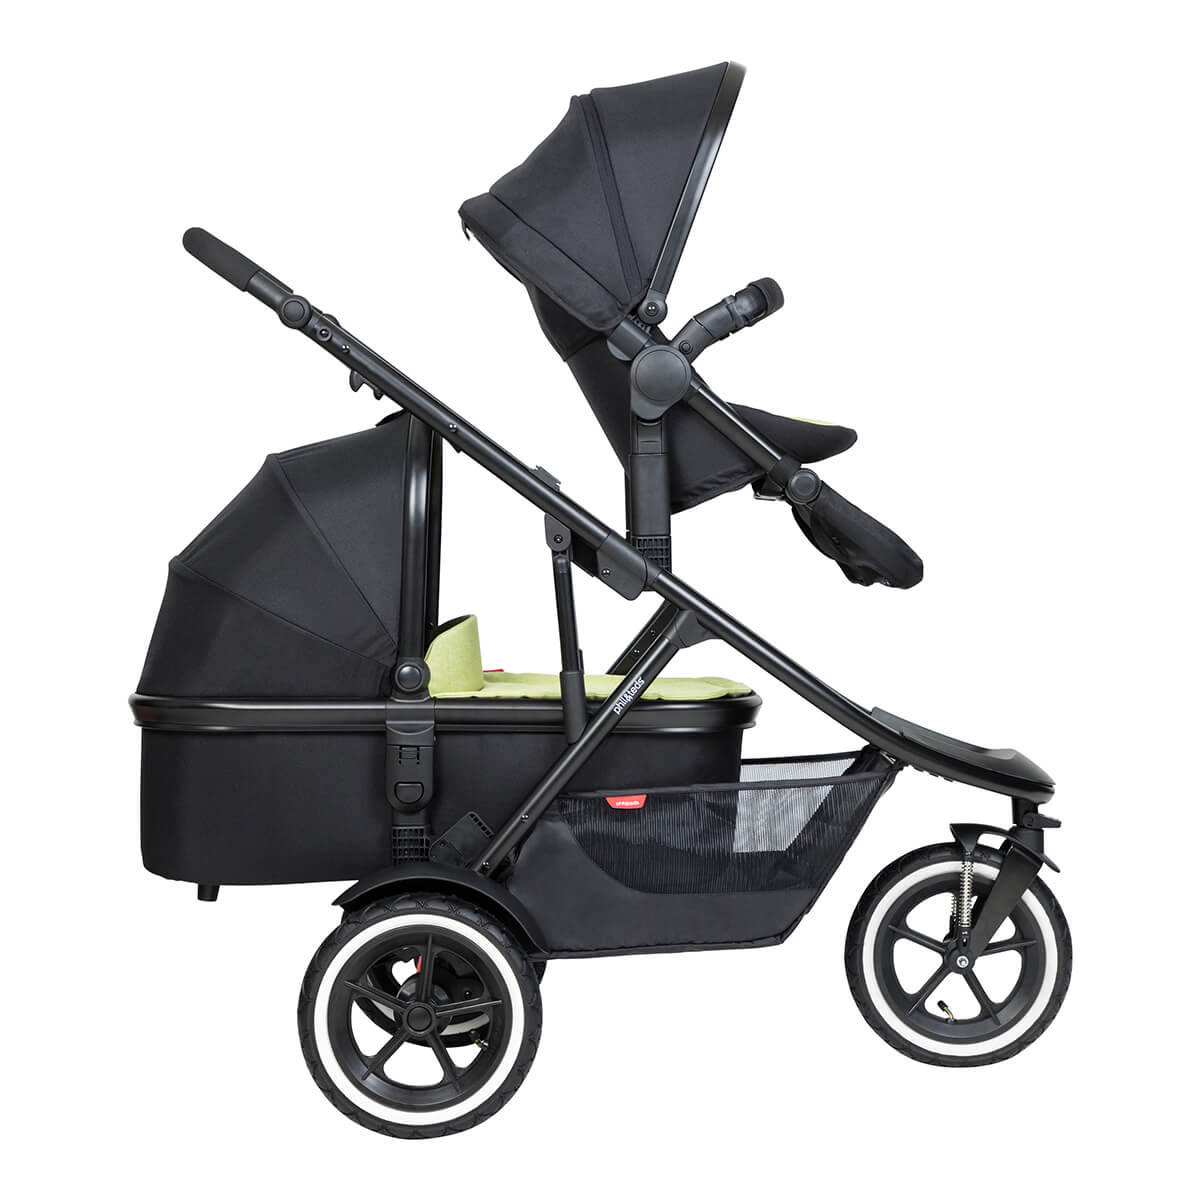 https://cdn.accentuate.io/4509528162392/19272668282968/philteds-sport-poussette-with-double-kit-extended-clip-and-snug-carrycot-side-view-v1626484434198.jpg?1200x1200